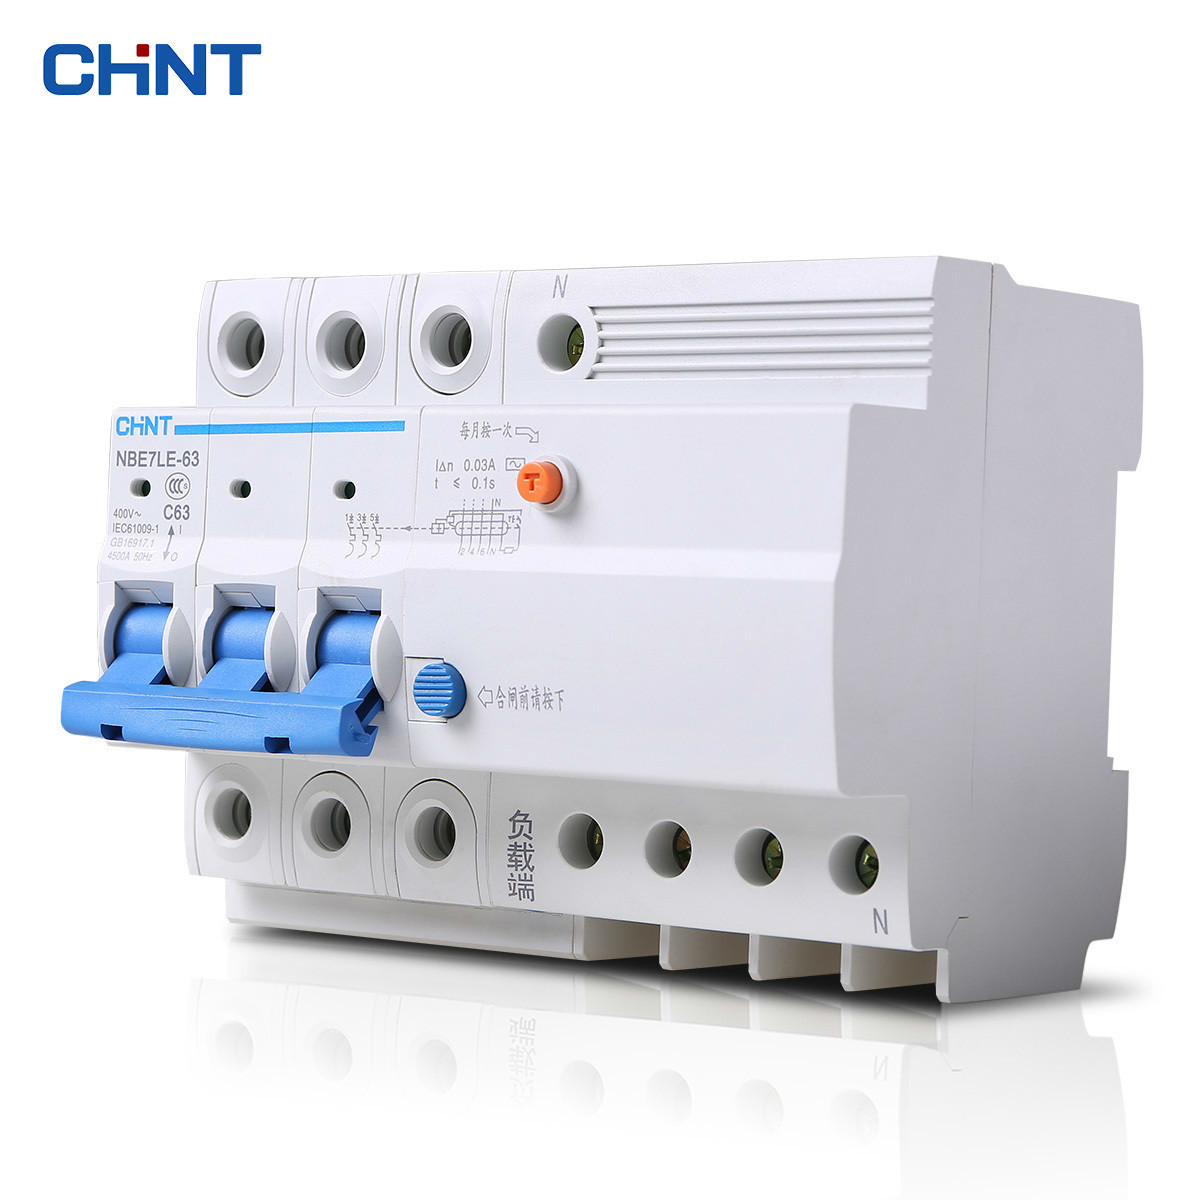 CHNT CHINT Leakage Protector NBE7LE 3P + N 16A 20A 25A 32A 40A 63A Small Circuit Breaker Air Switch msata ssd to sata 7 17 pin adapter card for macbook pro for mc976 a1425 a1398 l059 new hot